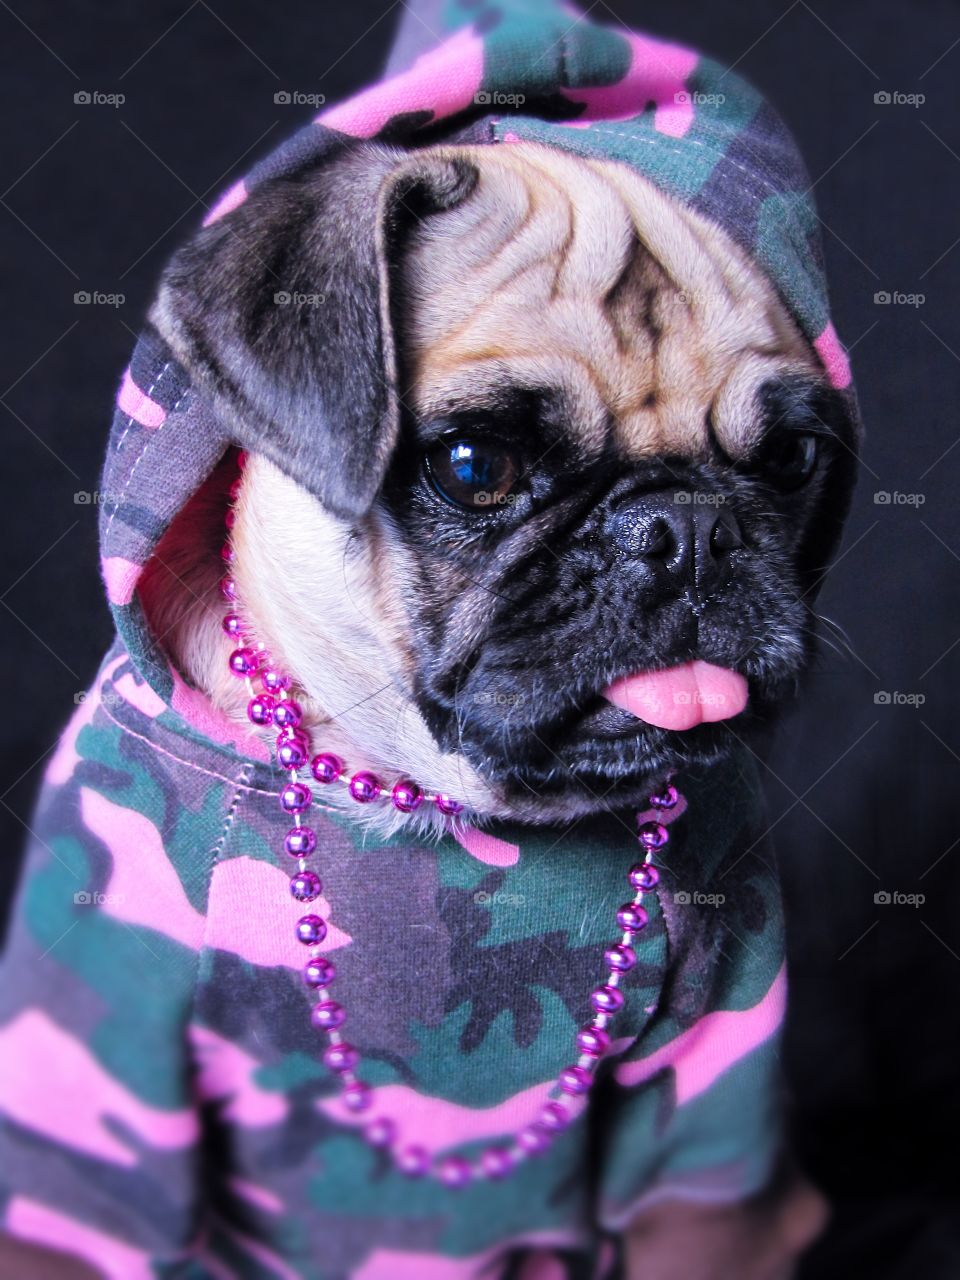 Studio shot of pug wearing cloths and necklace